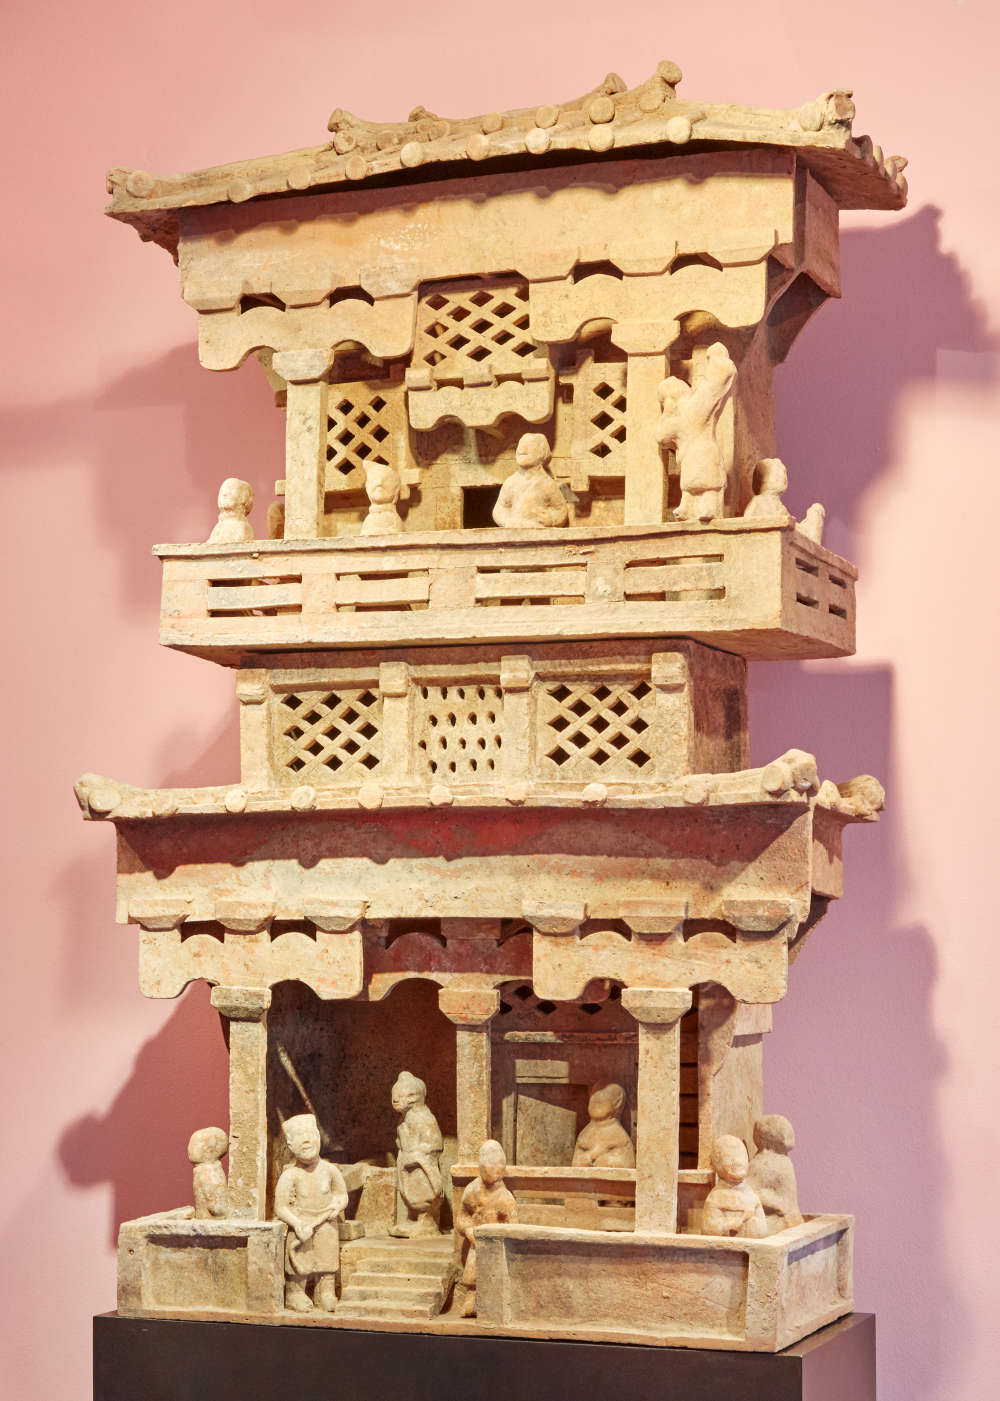 Painted Terractotta Model of a House, China, 0 - 300 CE